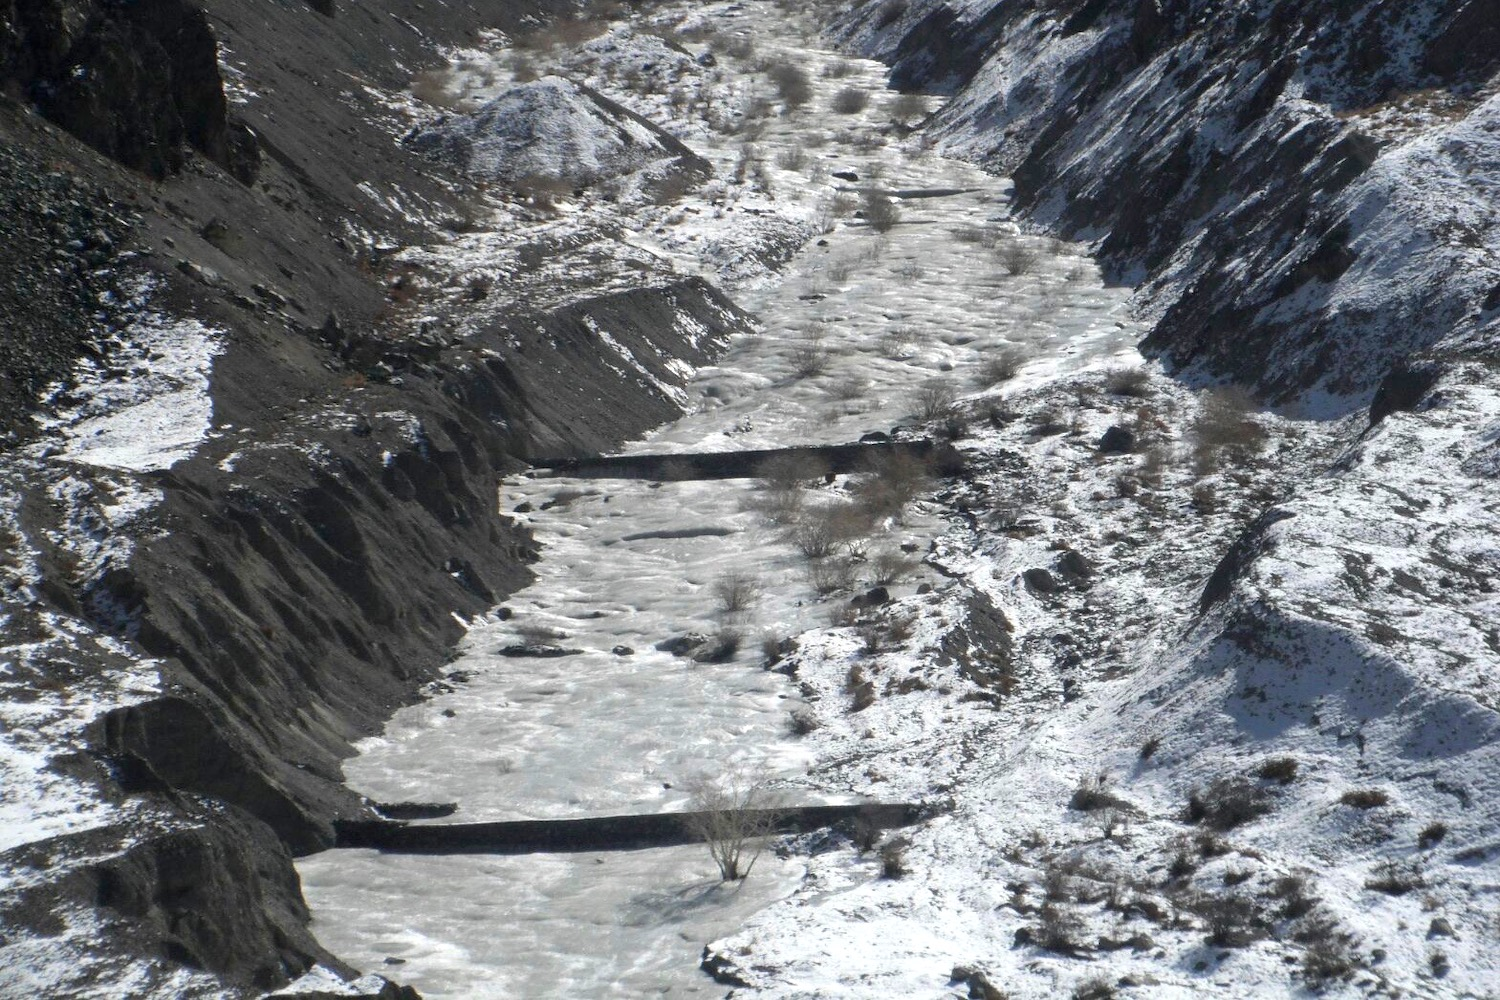 Sustainable community development - an artificial glacier in Ladakh, India